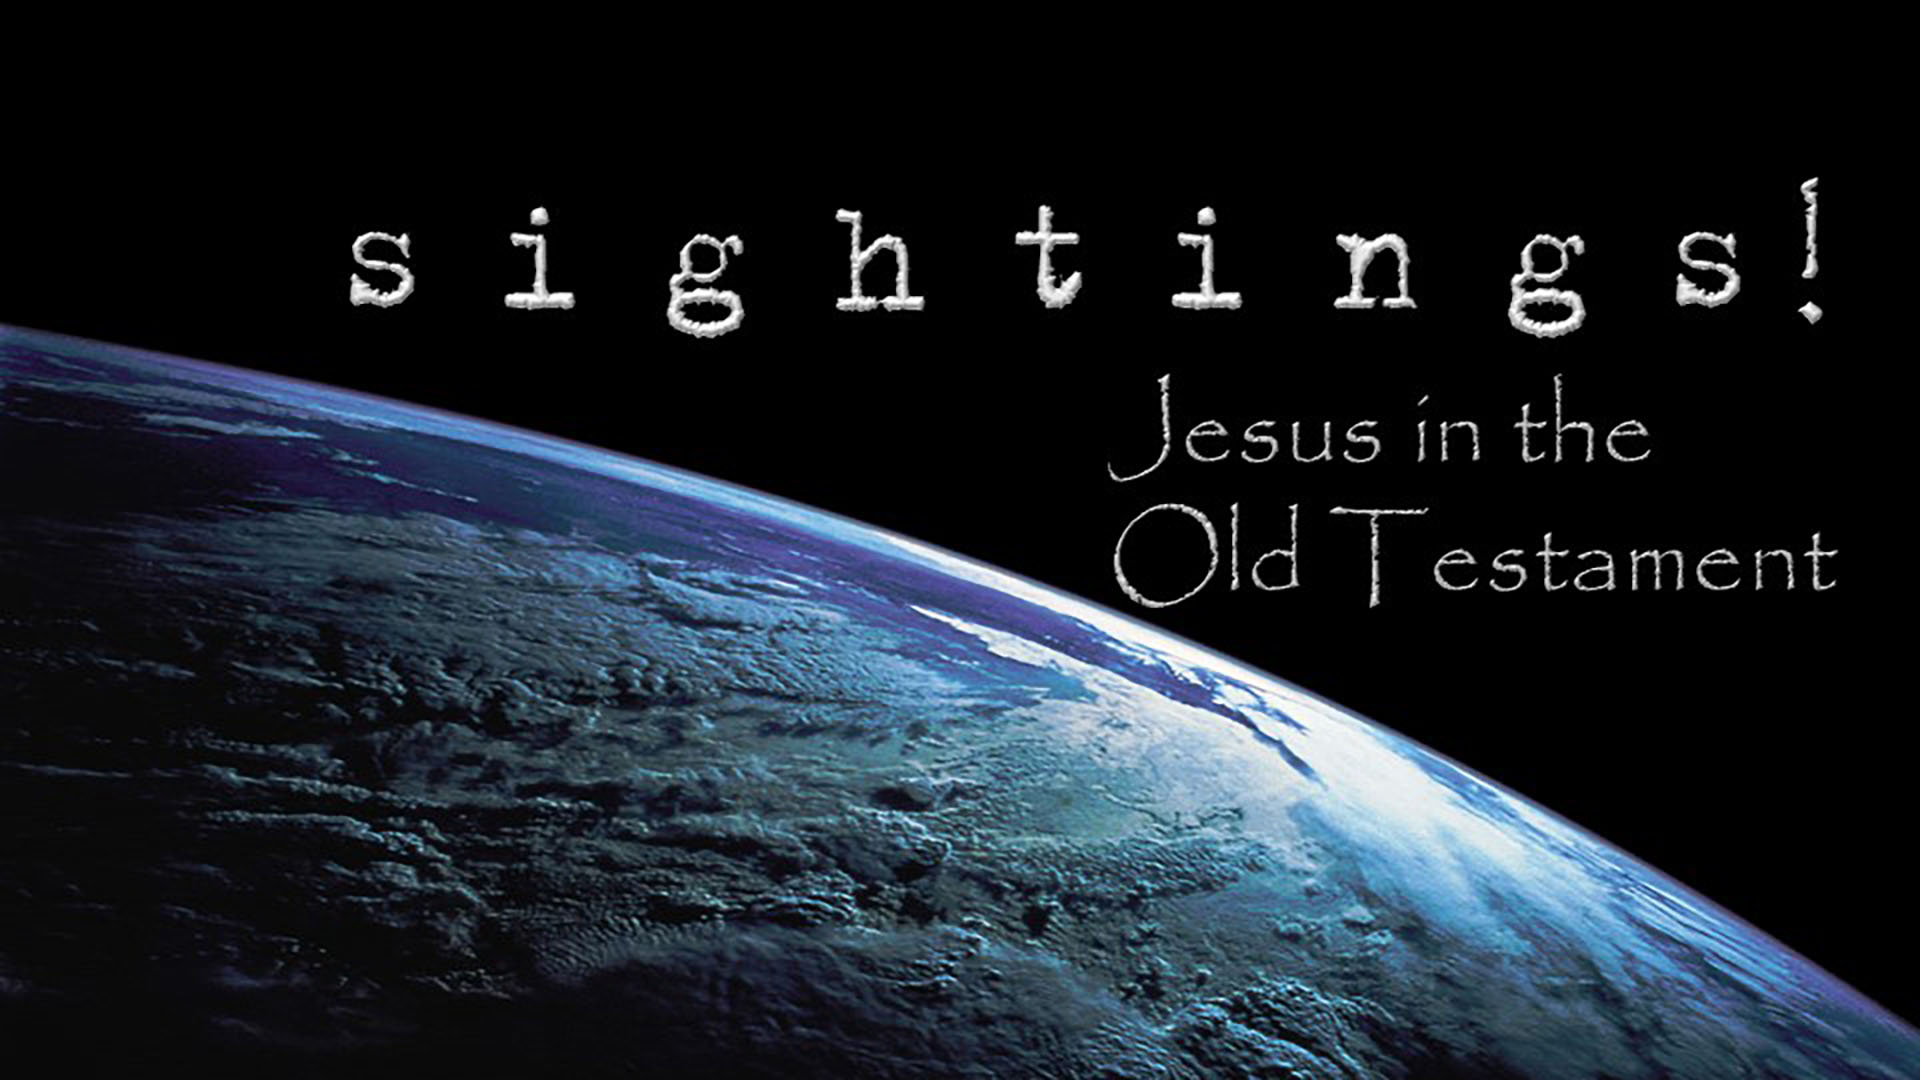 Old Testament Sightings of Jesus